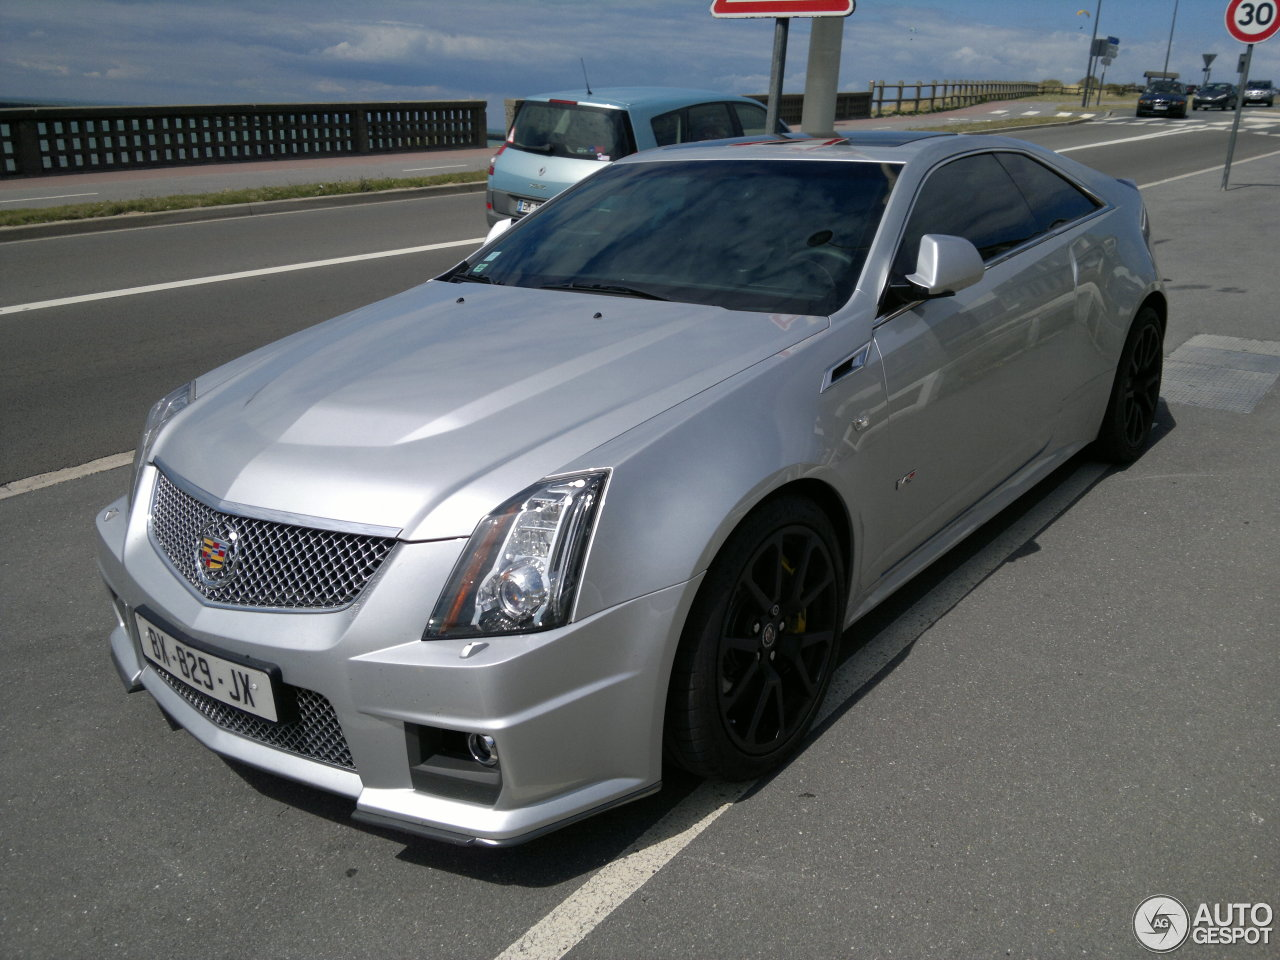 cadillac cts v coup 3 february 2018 autogespot. Black Bedroom Furniture Sets. Home Design Ideas